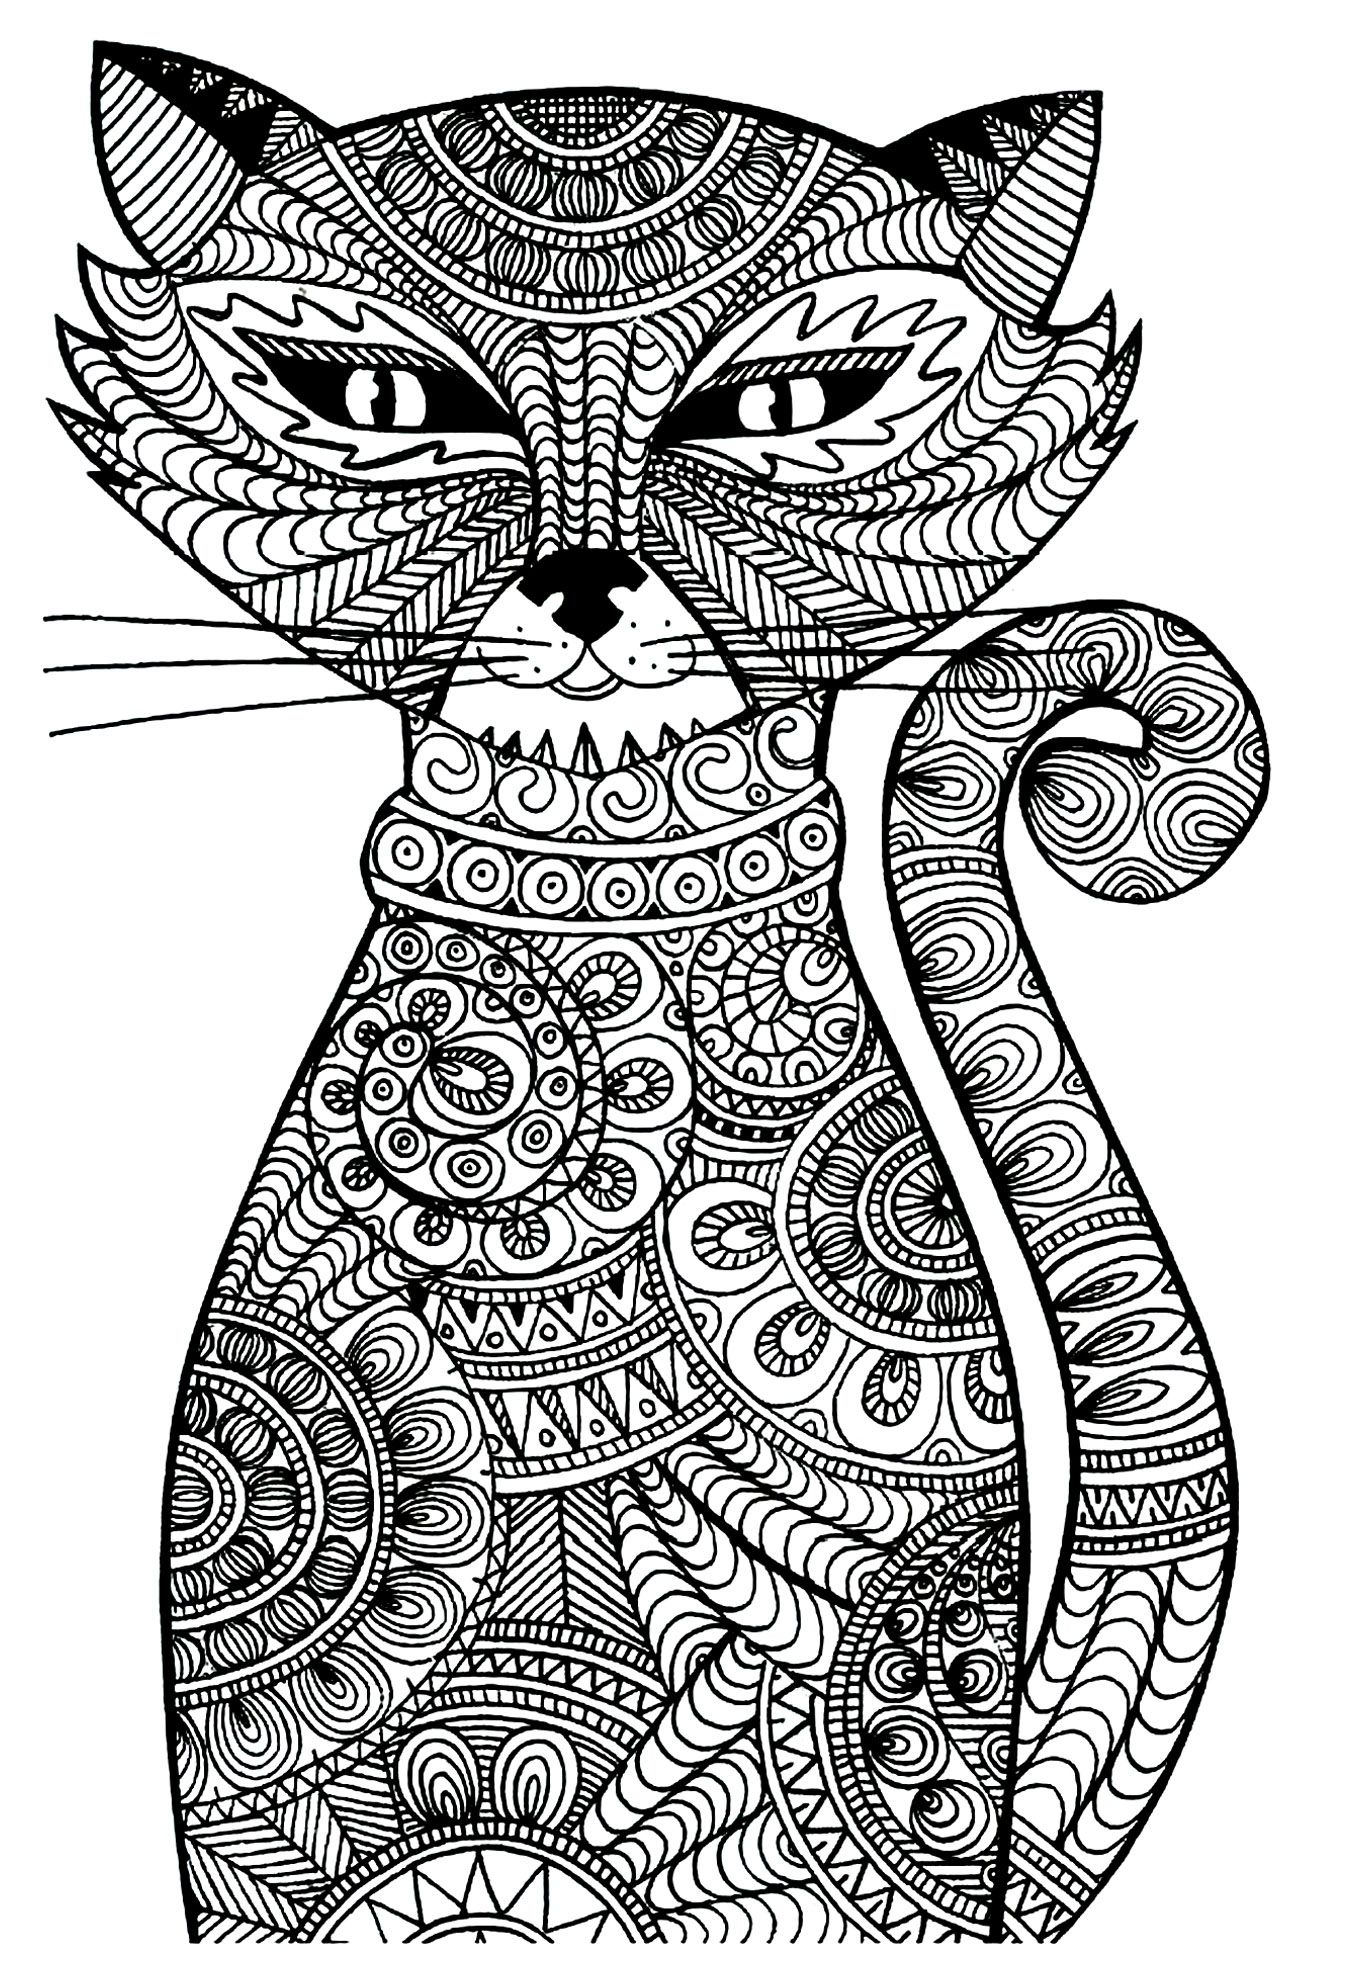 free coloring page coloring adult cat cat with zentangle patterns